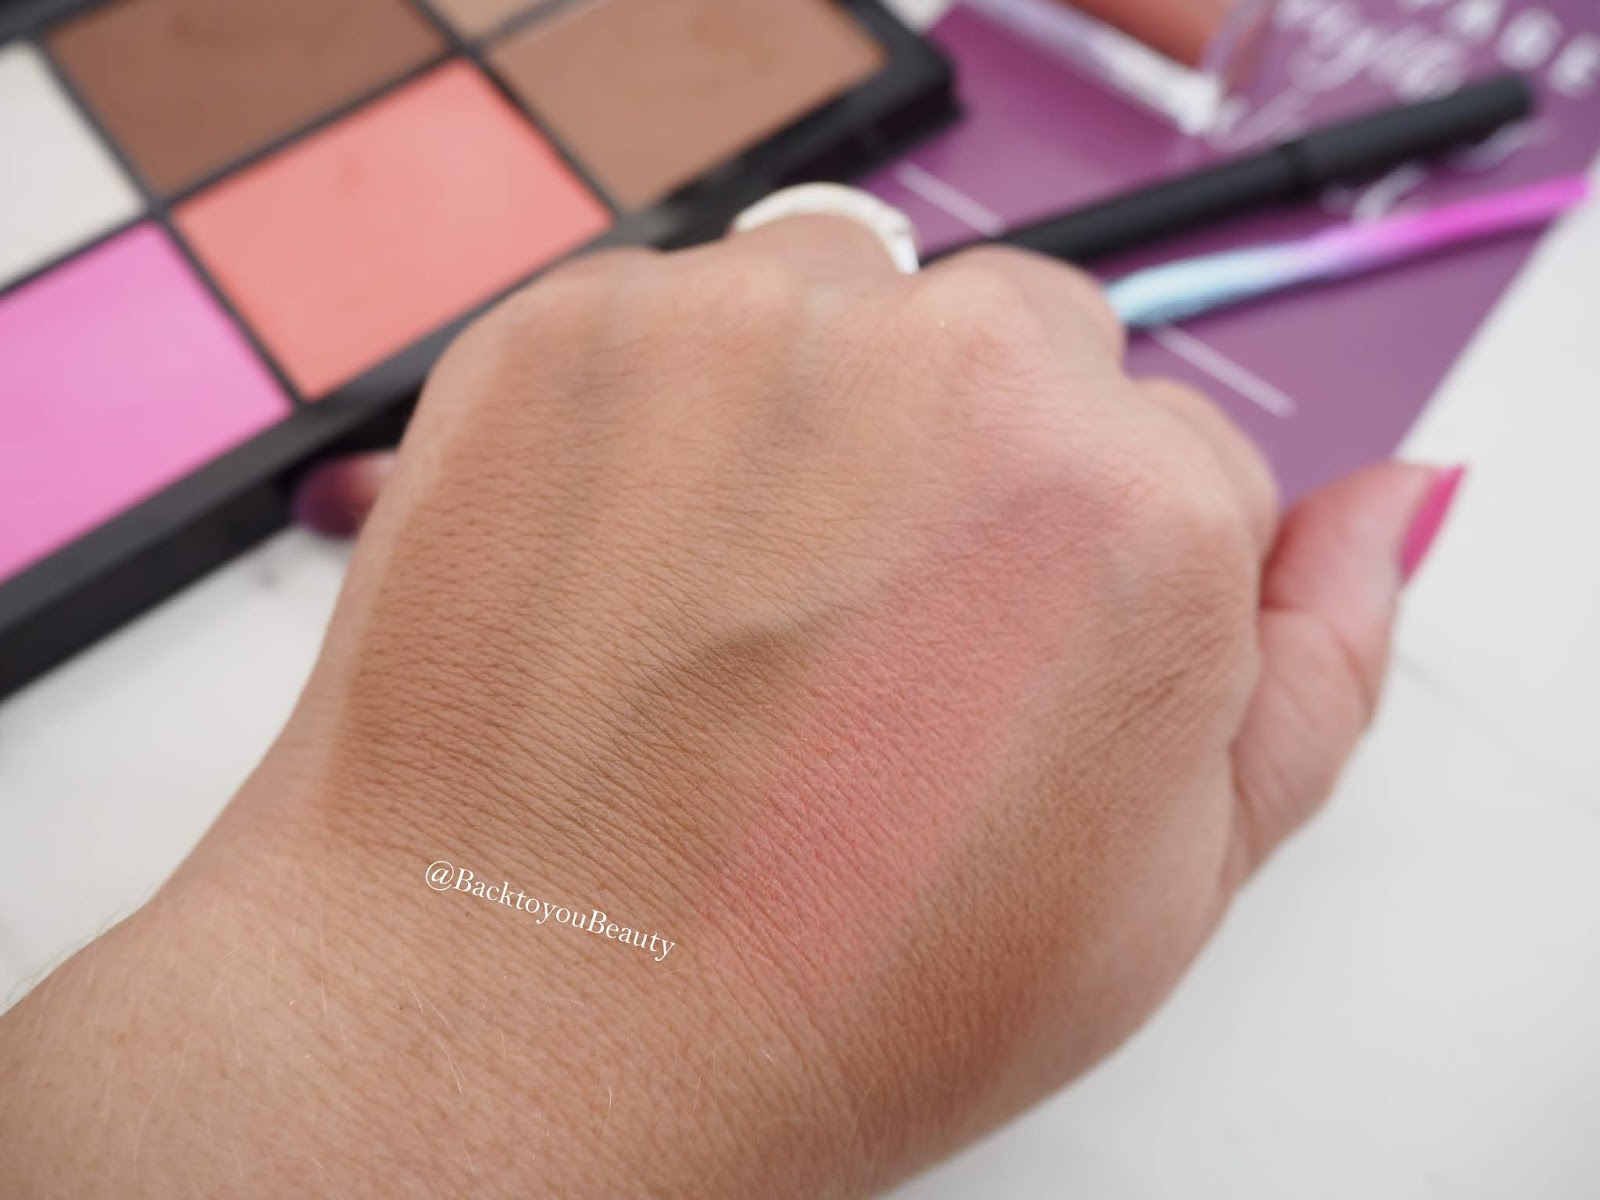 LMX Beauty Face Palette Swatches 2